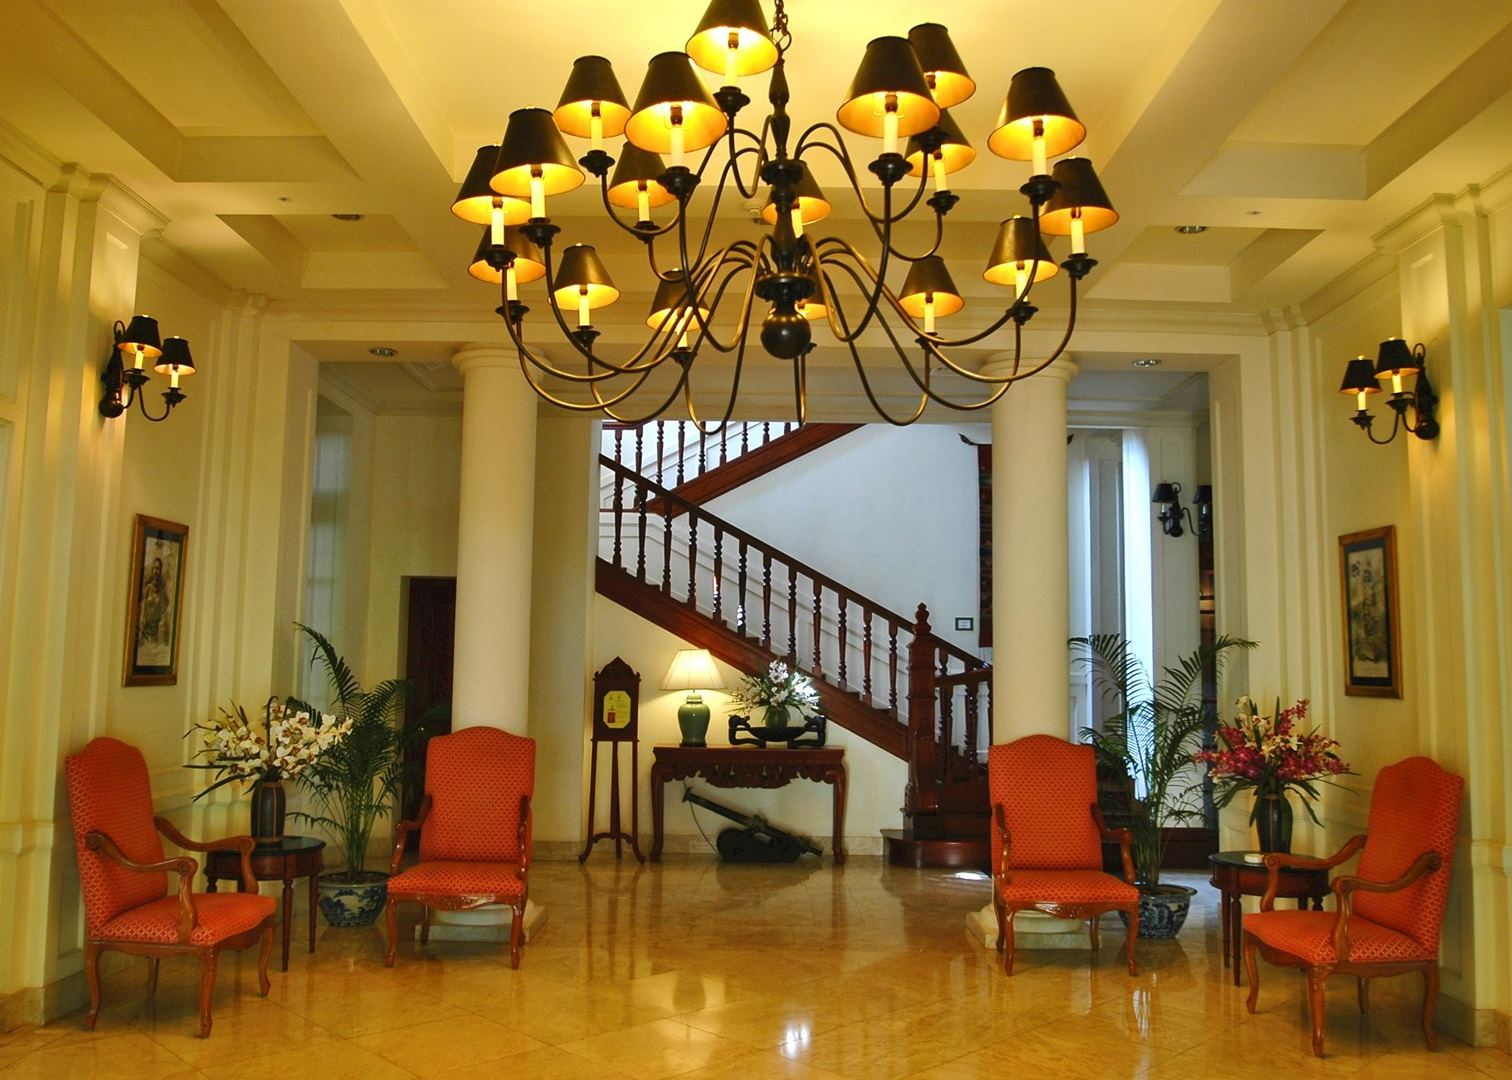 Settha palace hotels in vientiane audley travel - Settha palace hotel swimming pool ...